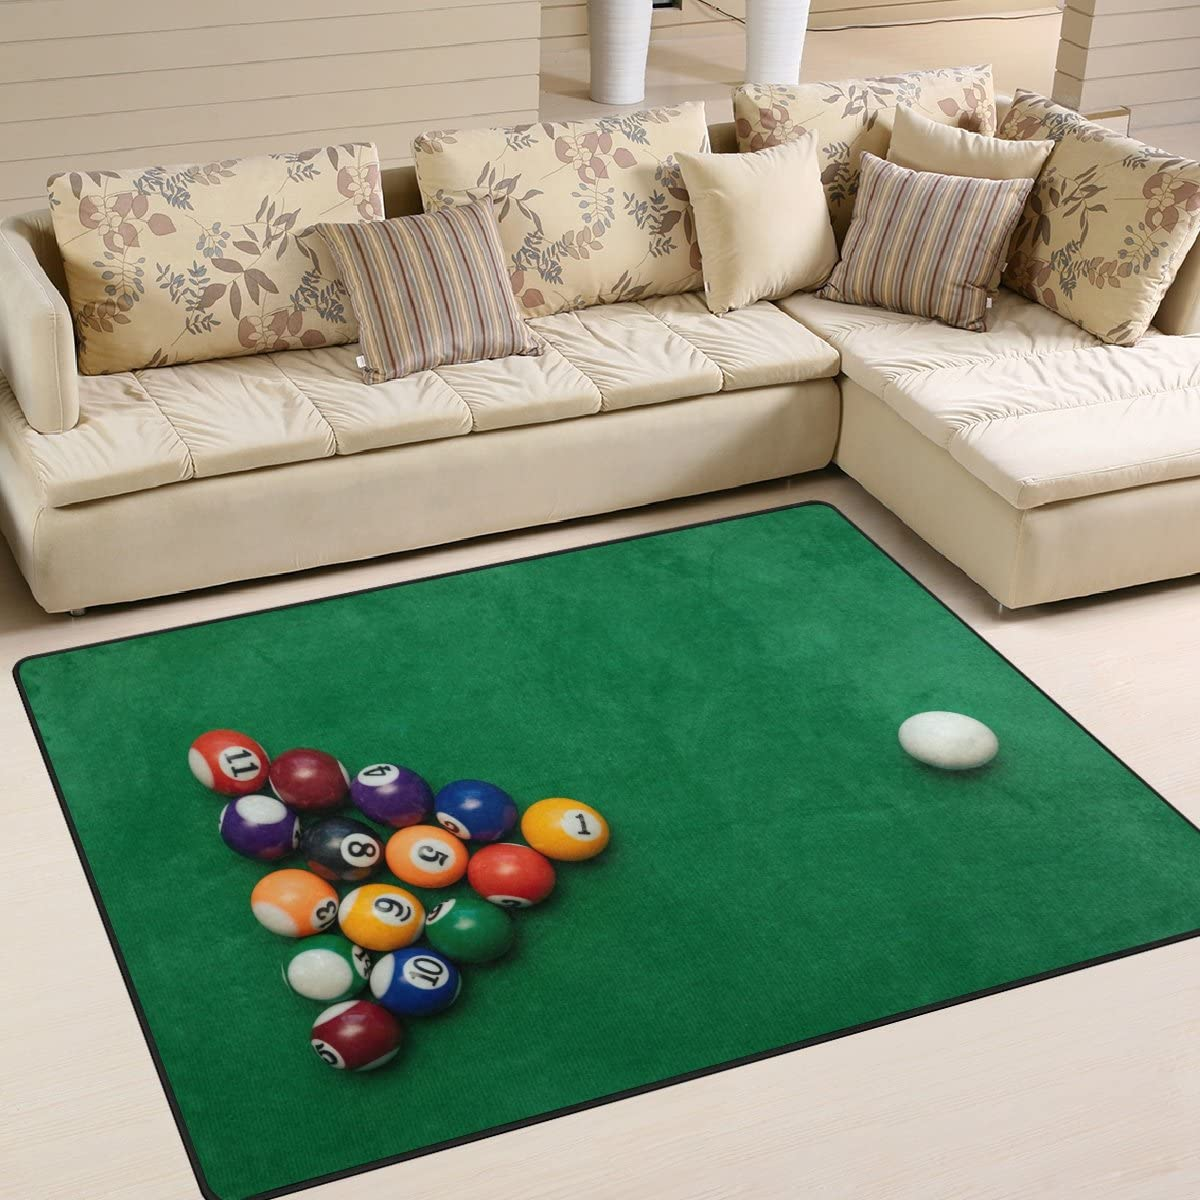 ALAZA American Billiards Pool on Green Table Area Rug Rugs for Living Room Bedroom 5'3